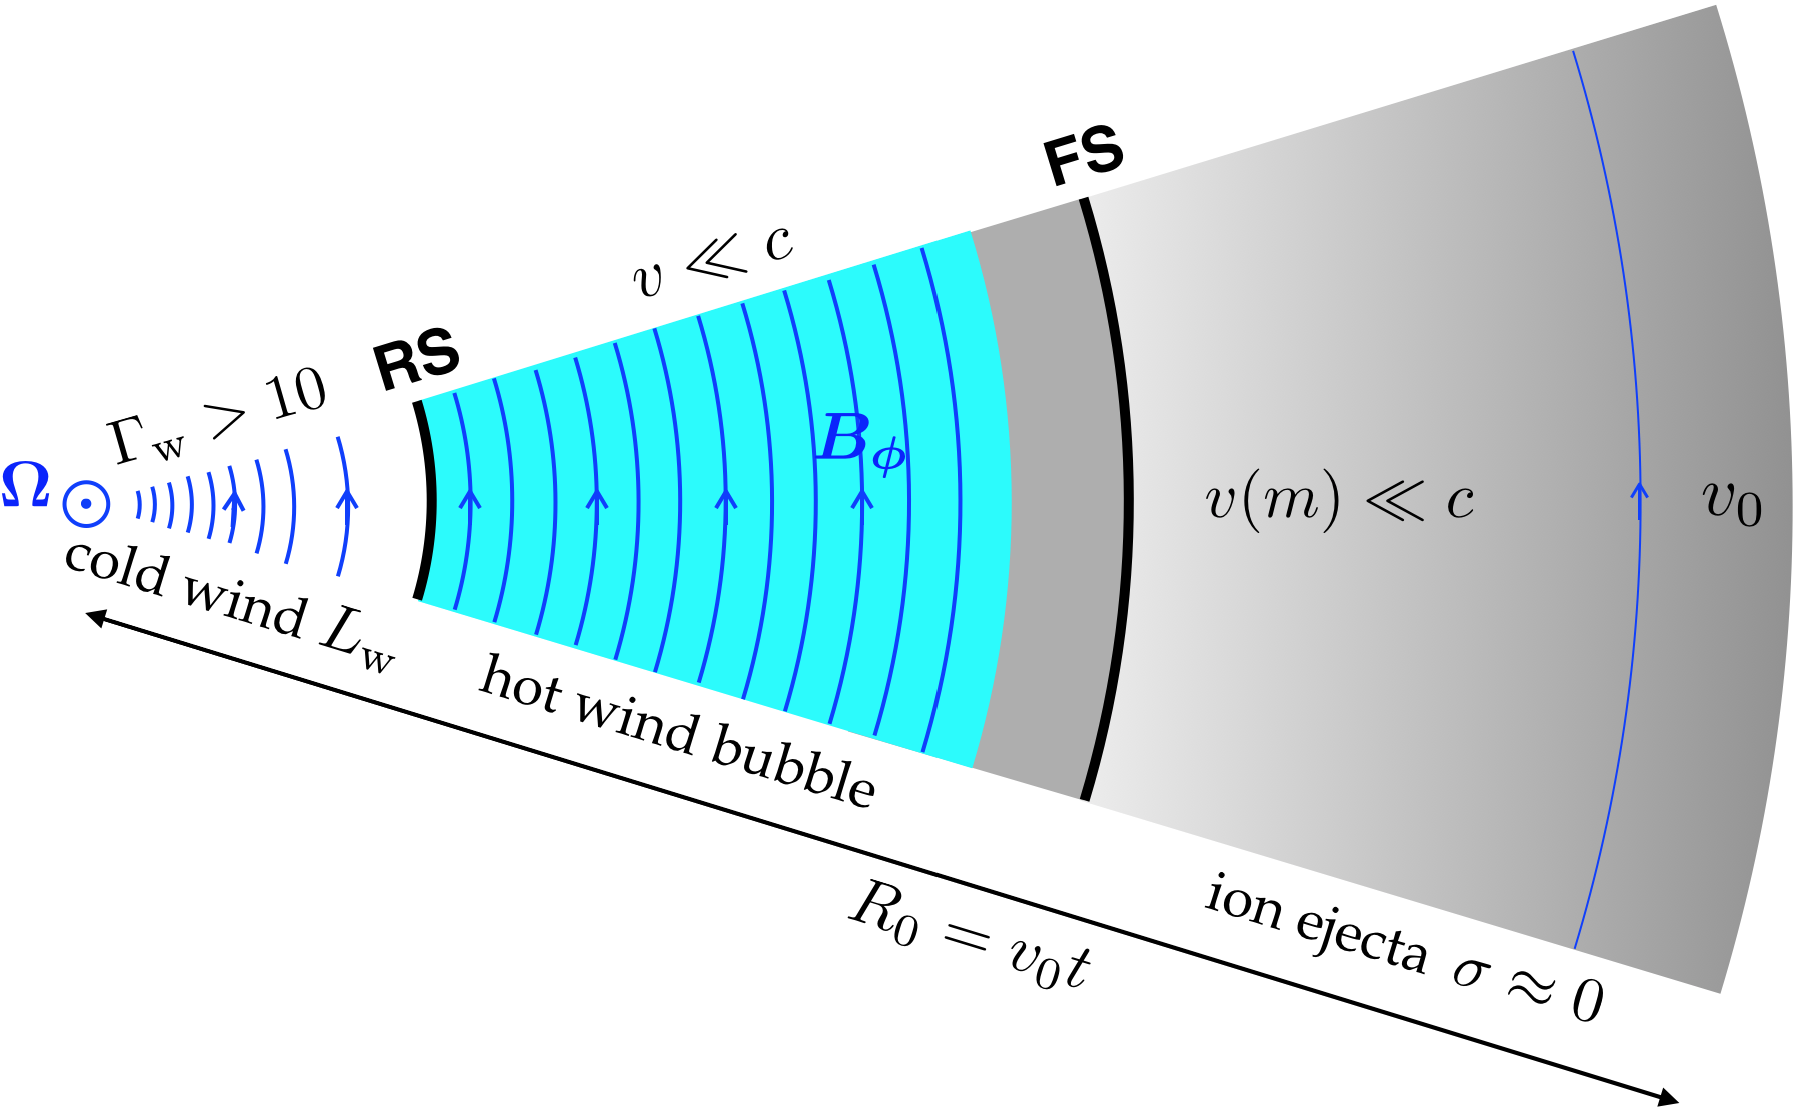 Wind interaction with the tail of ion ejecta. The slow ion matter (grey) was ejected time